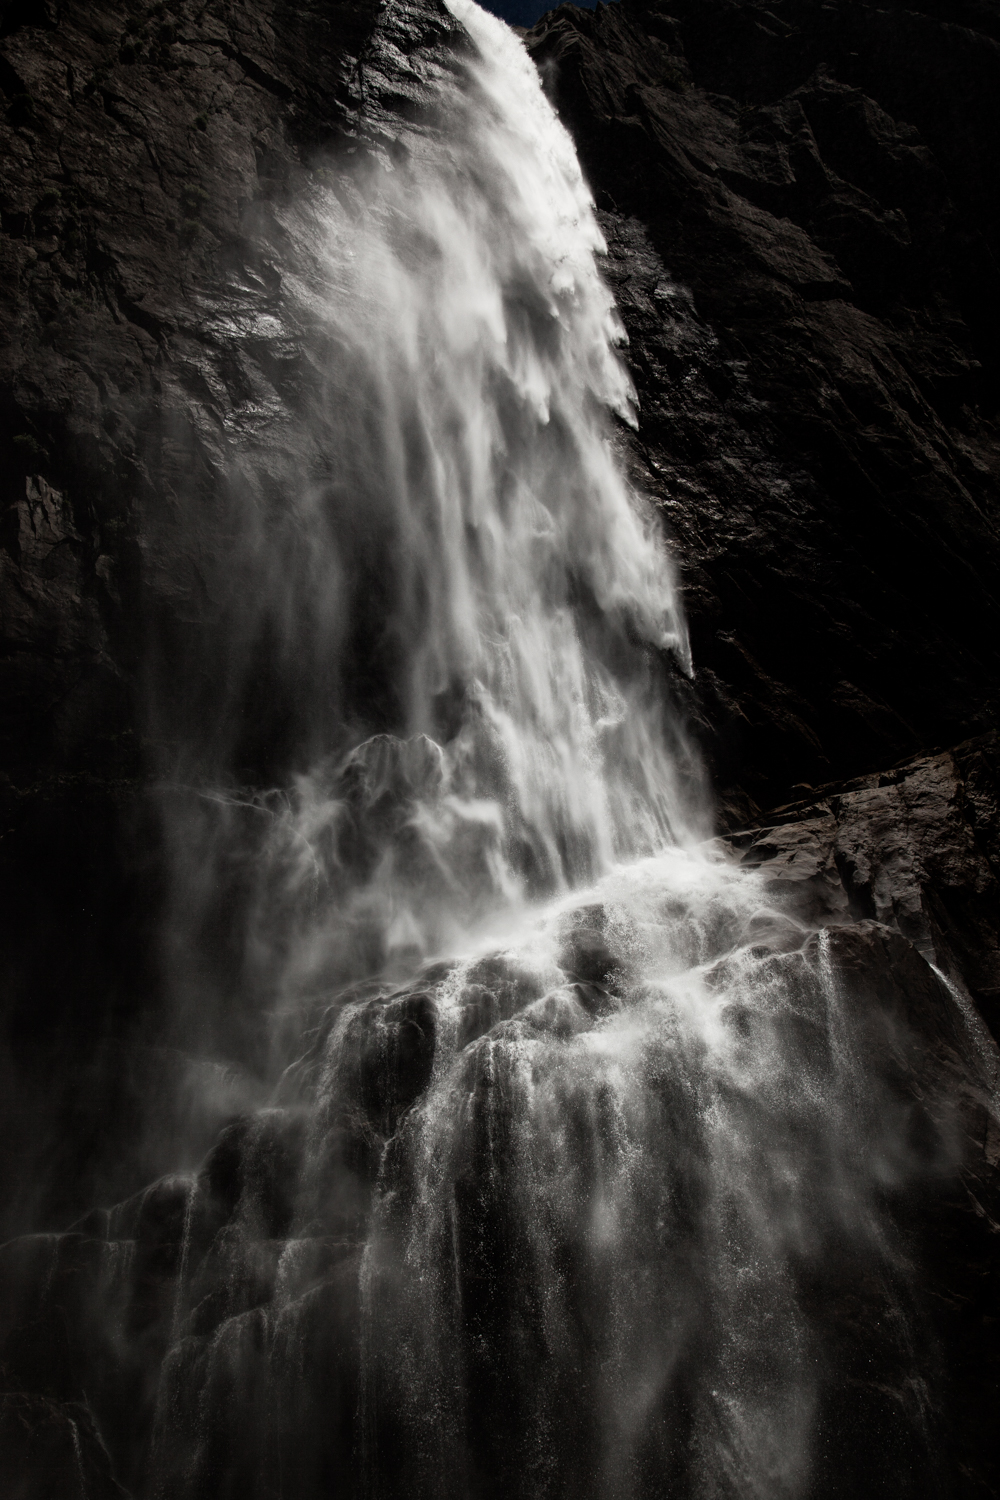 Waterfall_Yosemite_tall-62.jpg